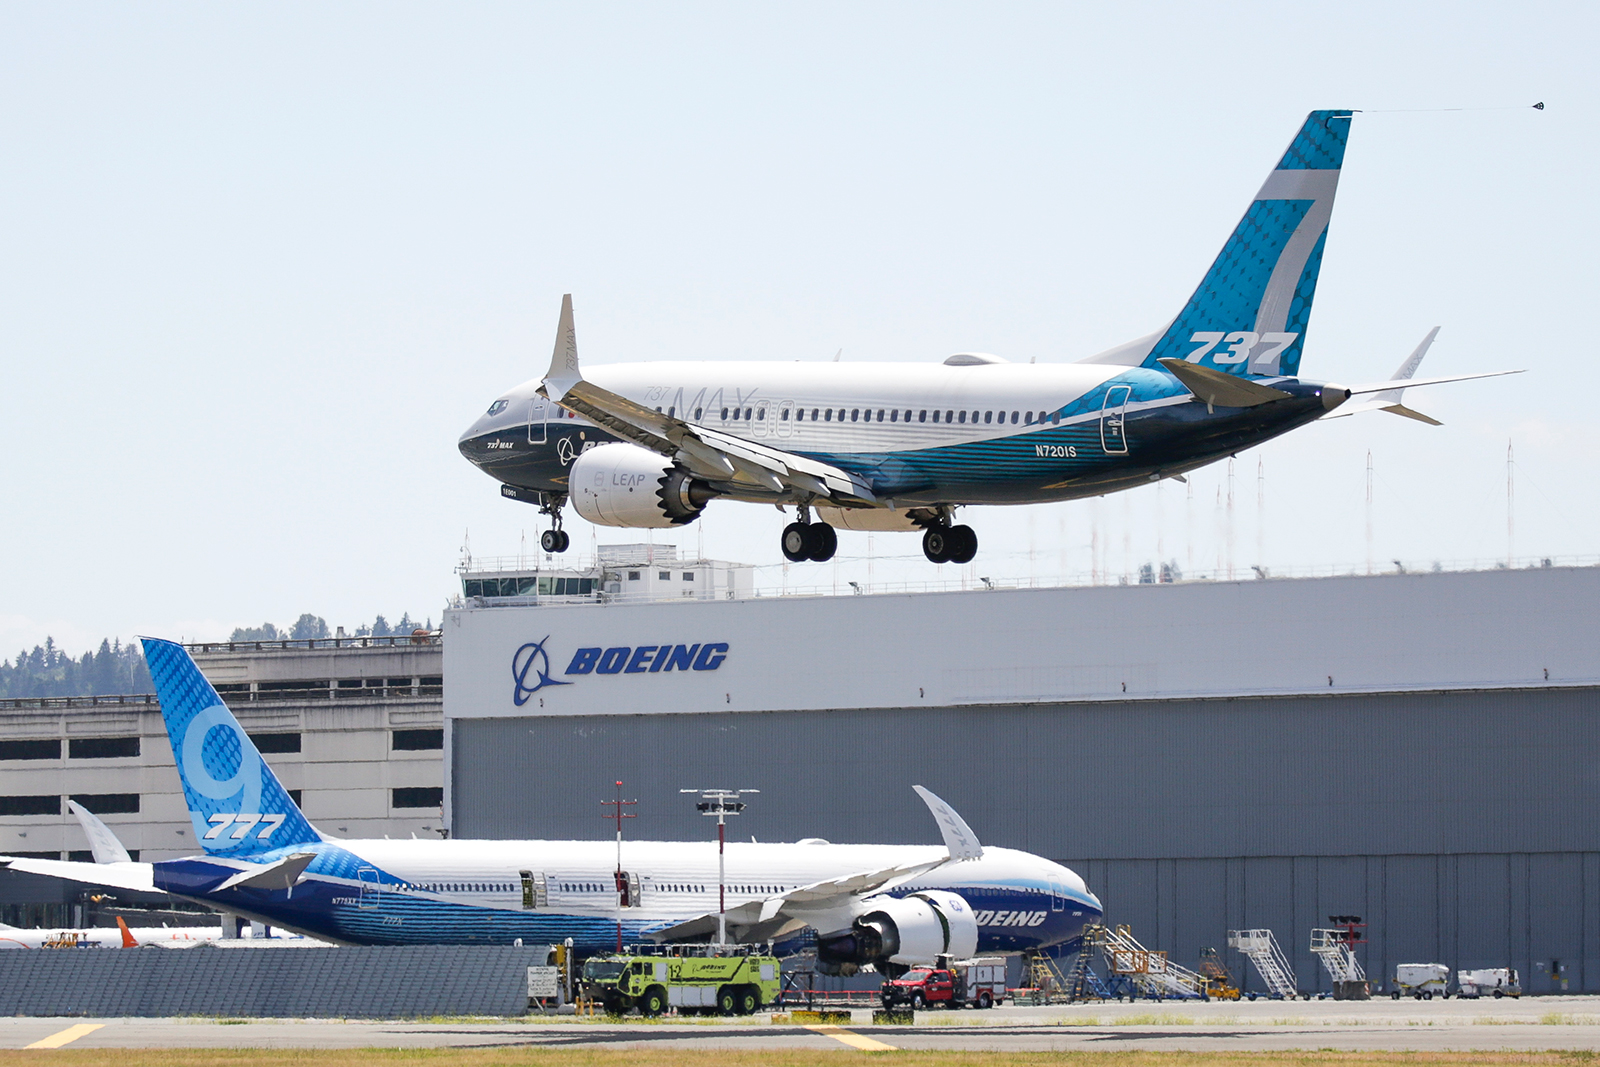 A Boeing 737 MAX jet lands following Federal Aviation Administration test flight at Boeing Field in Seattle, Washington on June 29, 2020. (Jason Redmond/AFP/Getty Images via CNN Wire)